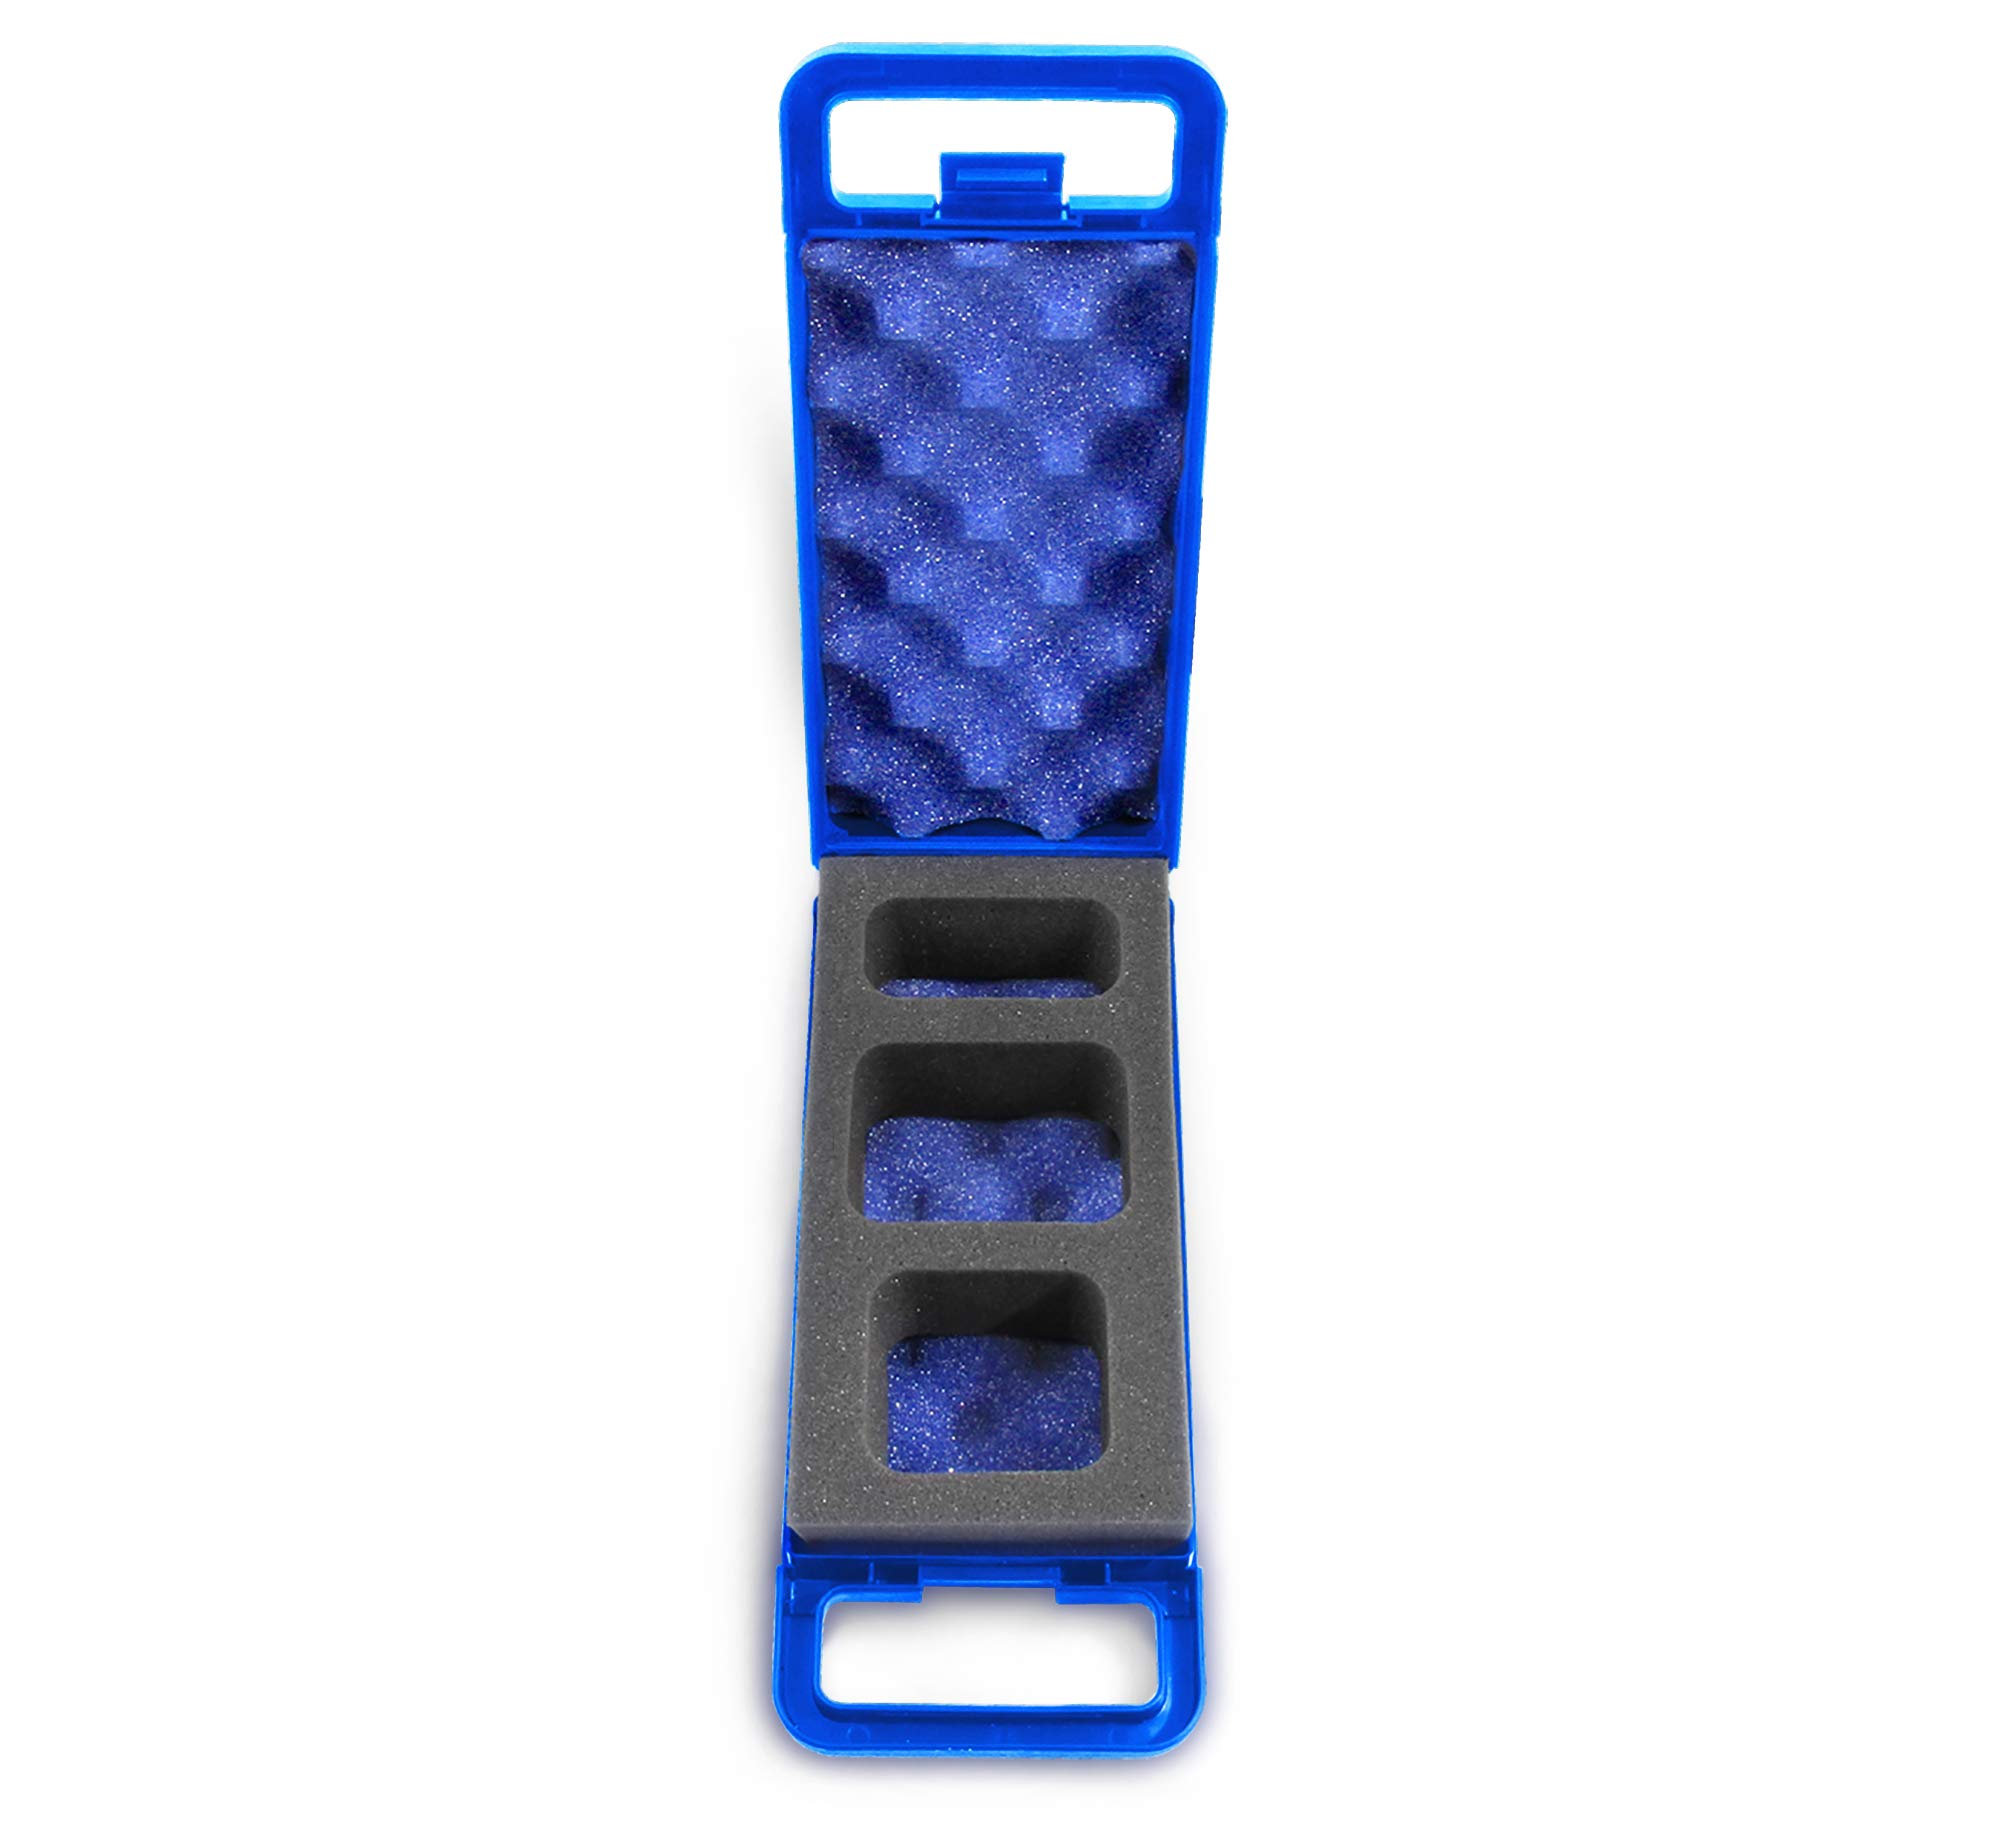 CASEMATIX Blue Toy Case Compatible with Boxer Robot and Boxer AI Interactive Toy Accessories - Includes CASE ONLY by CASEMATIX (Image #3)